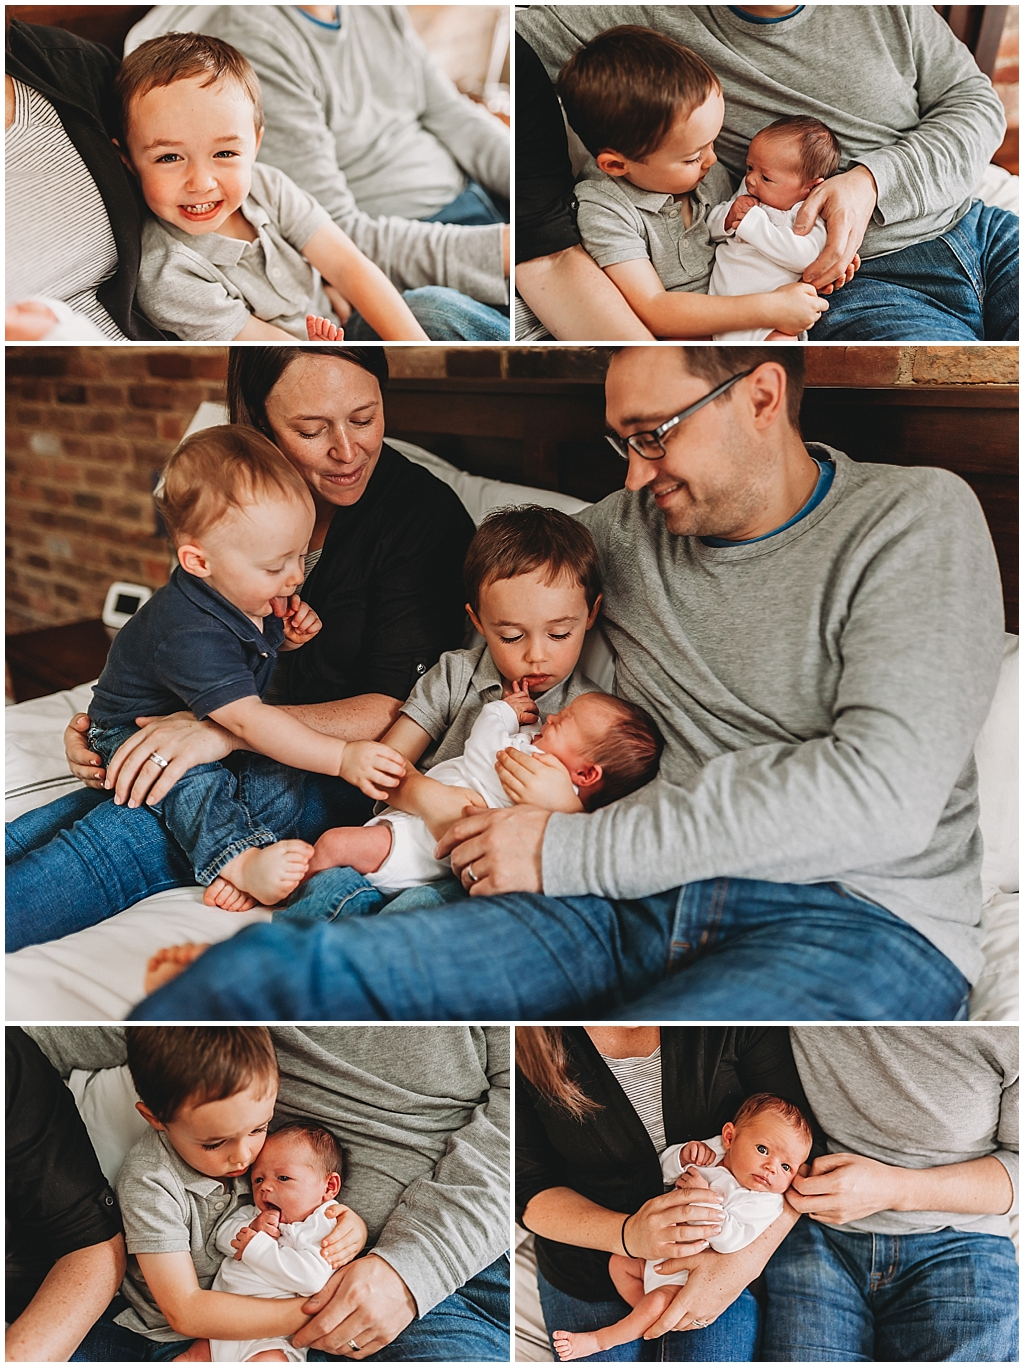 Young family welcoming newborn baby girl to family during in home photo session in Rocky River, OH.